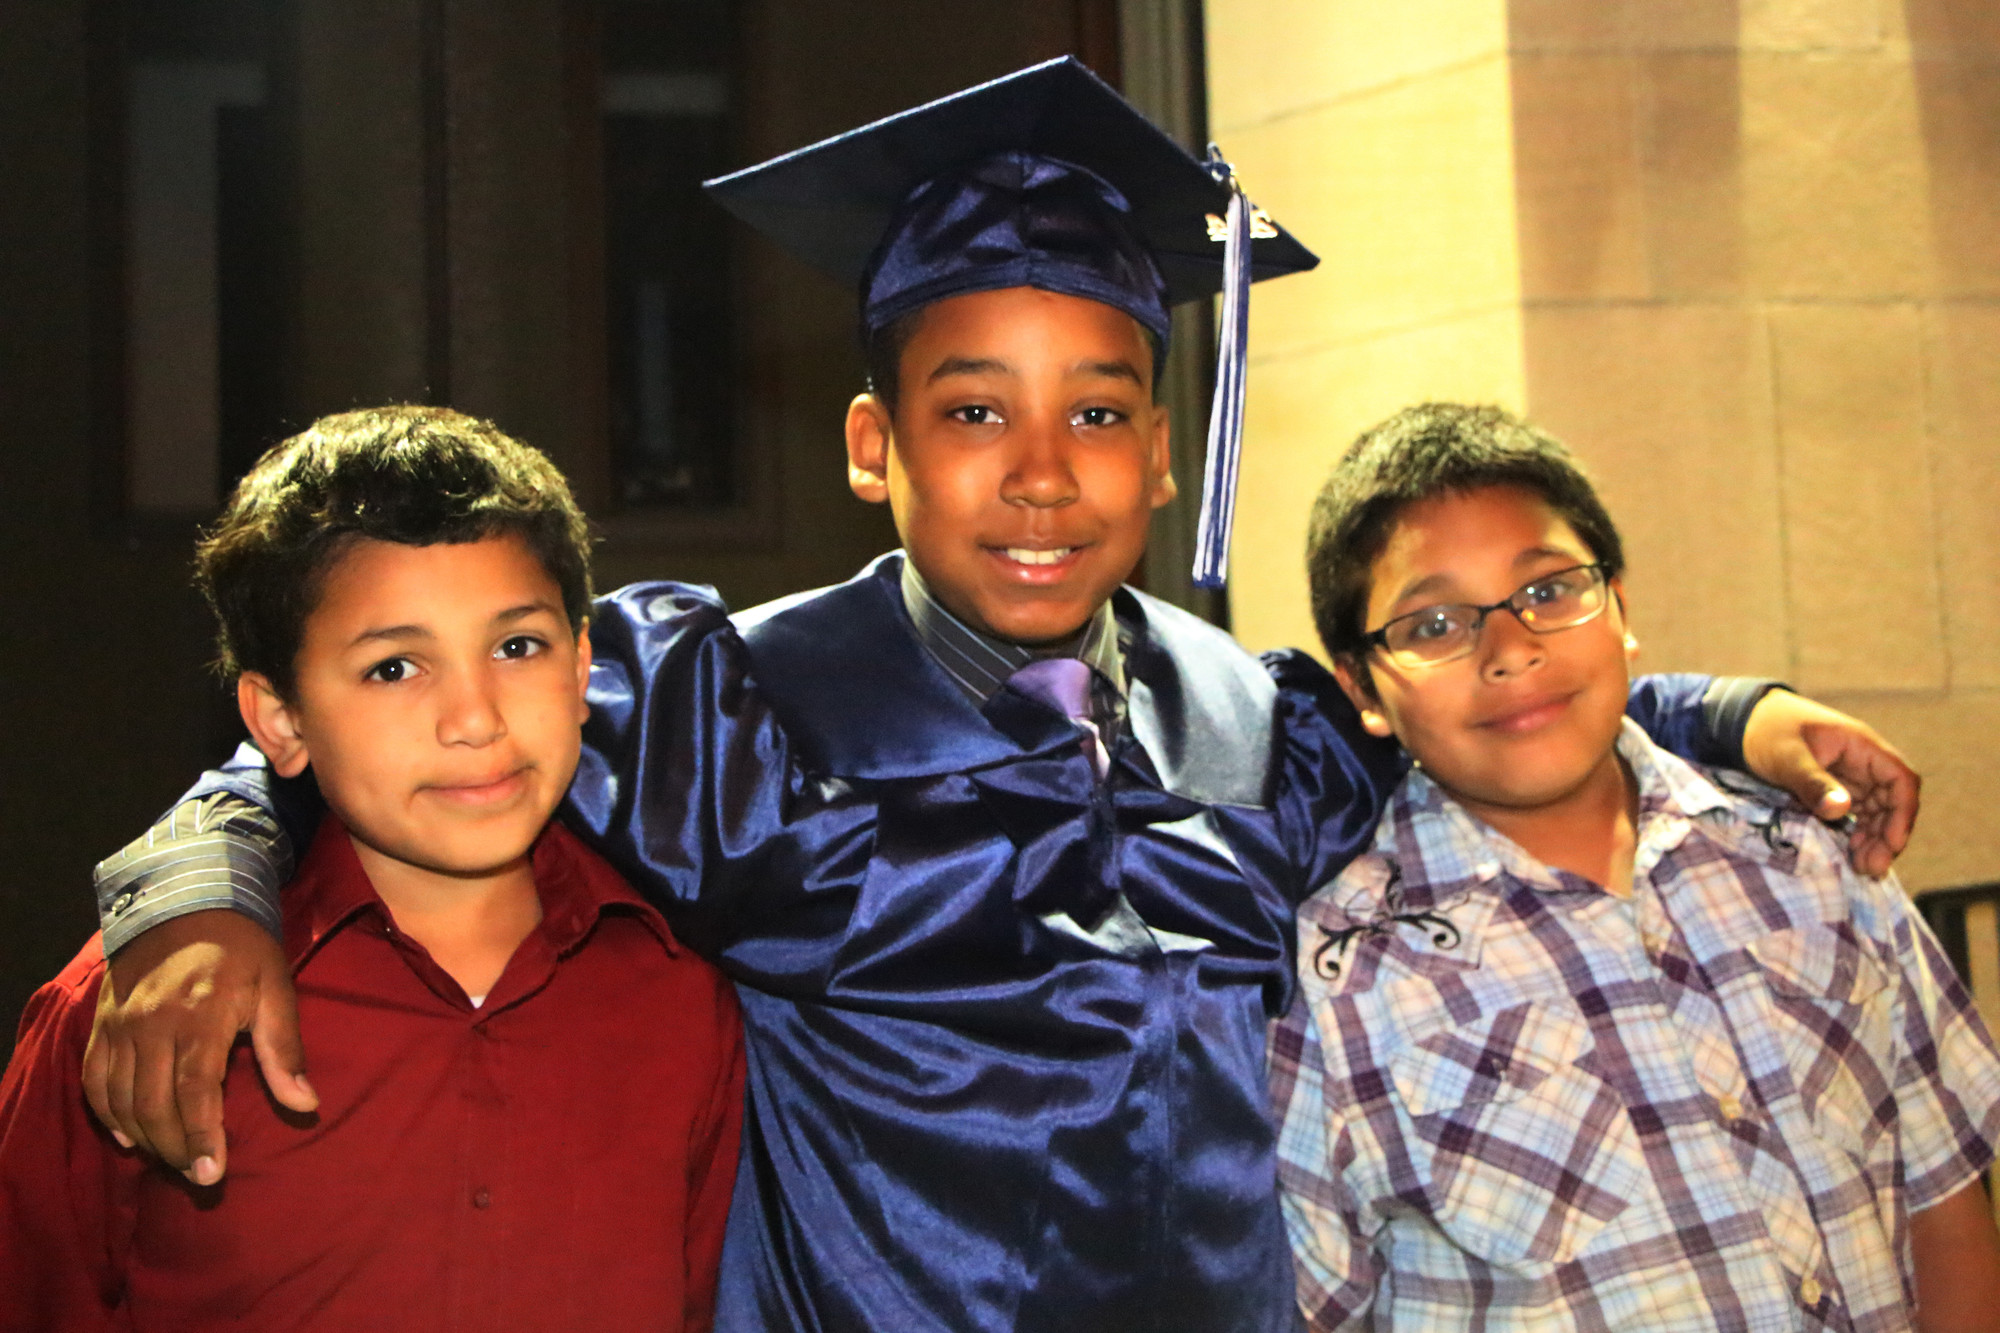 Graduate Michael Valenzuela  ,13, with his cousins, Adrian Rivera,10, and Jonathan Rivera, 9yrs, following the ceremony on June 12.